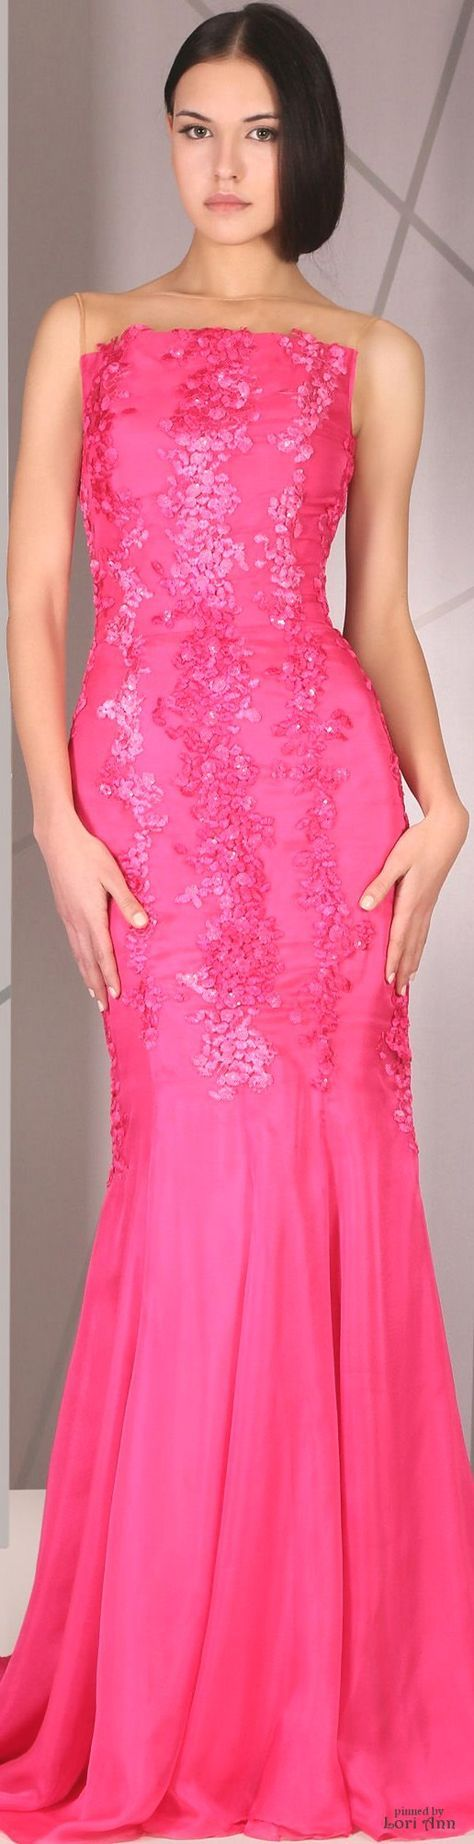 9 best Shades of Hot Pink images on Pinterest   Pink fashion, Cute ...